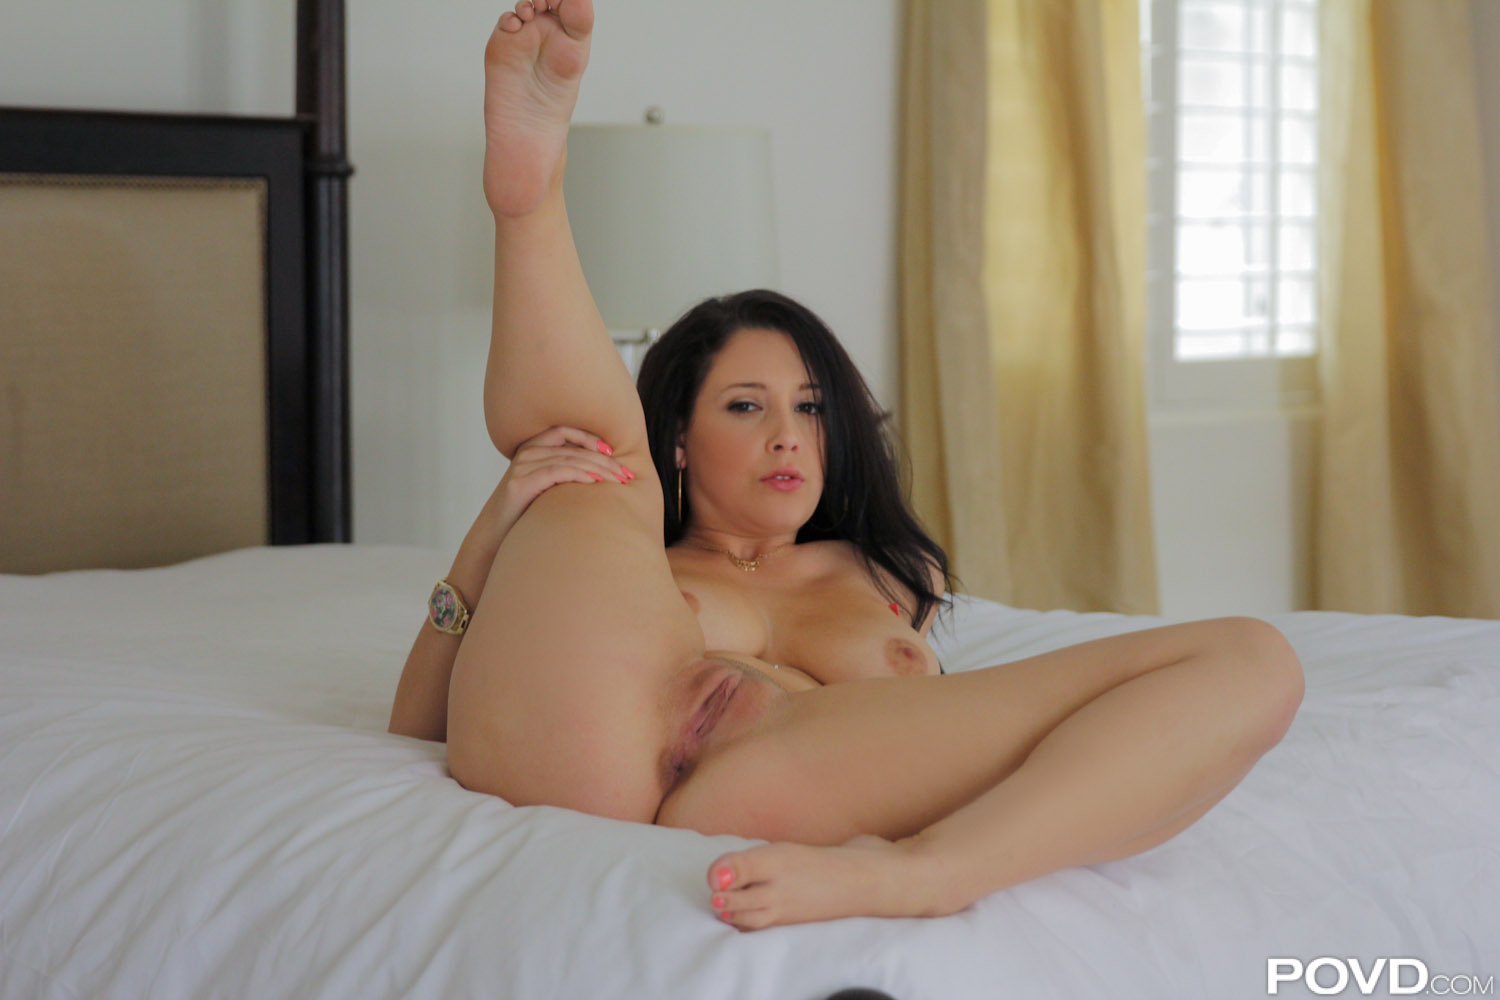 Povd noelle easton in stick em up povd tube porn videos and galleries